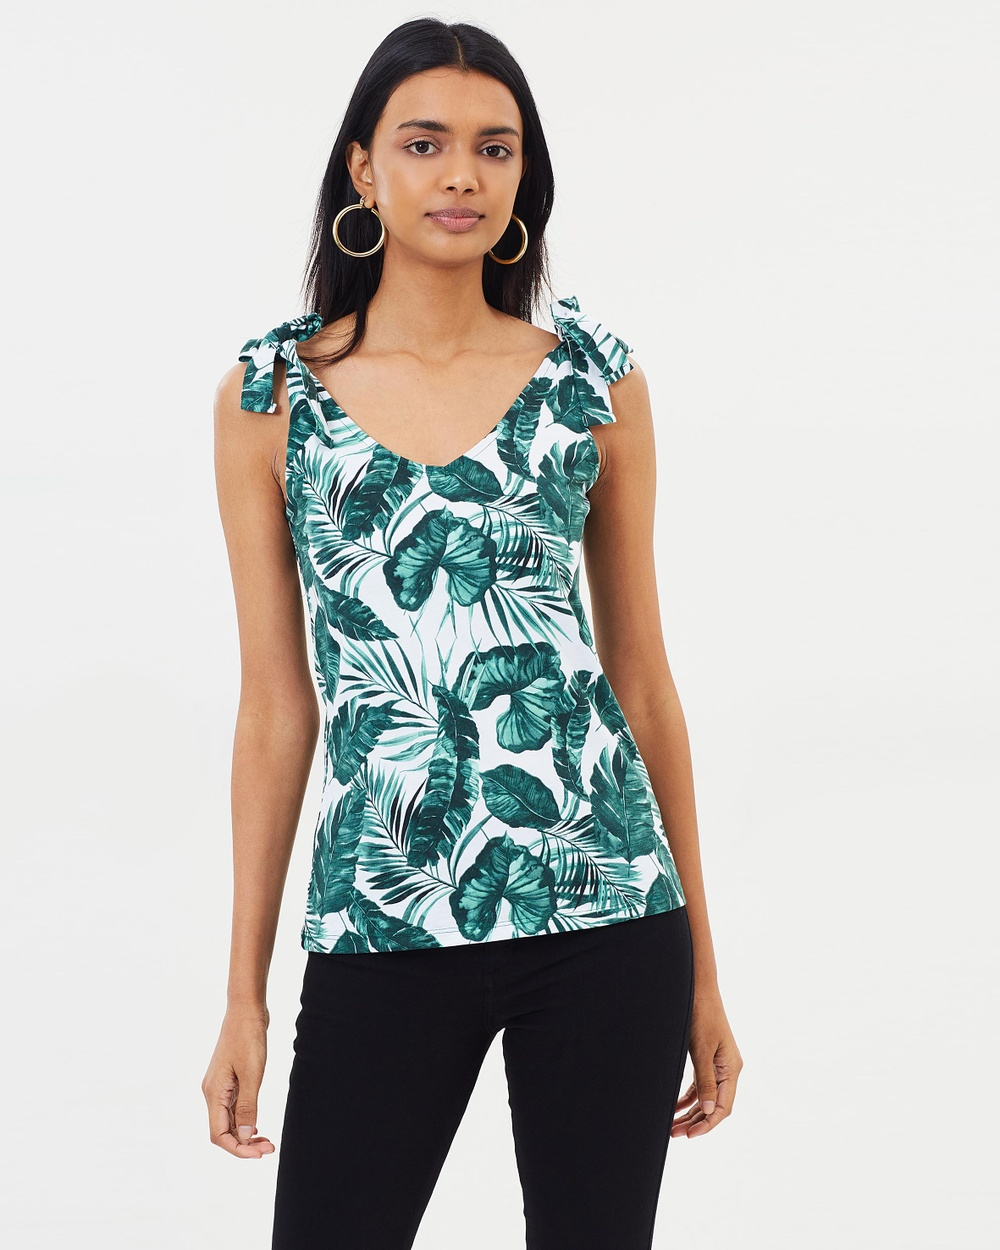 Dorothy Perkins Palm Printed Tie Top Tops Green Palm Printed Tie Top